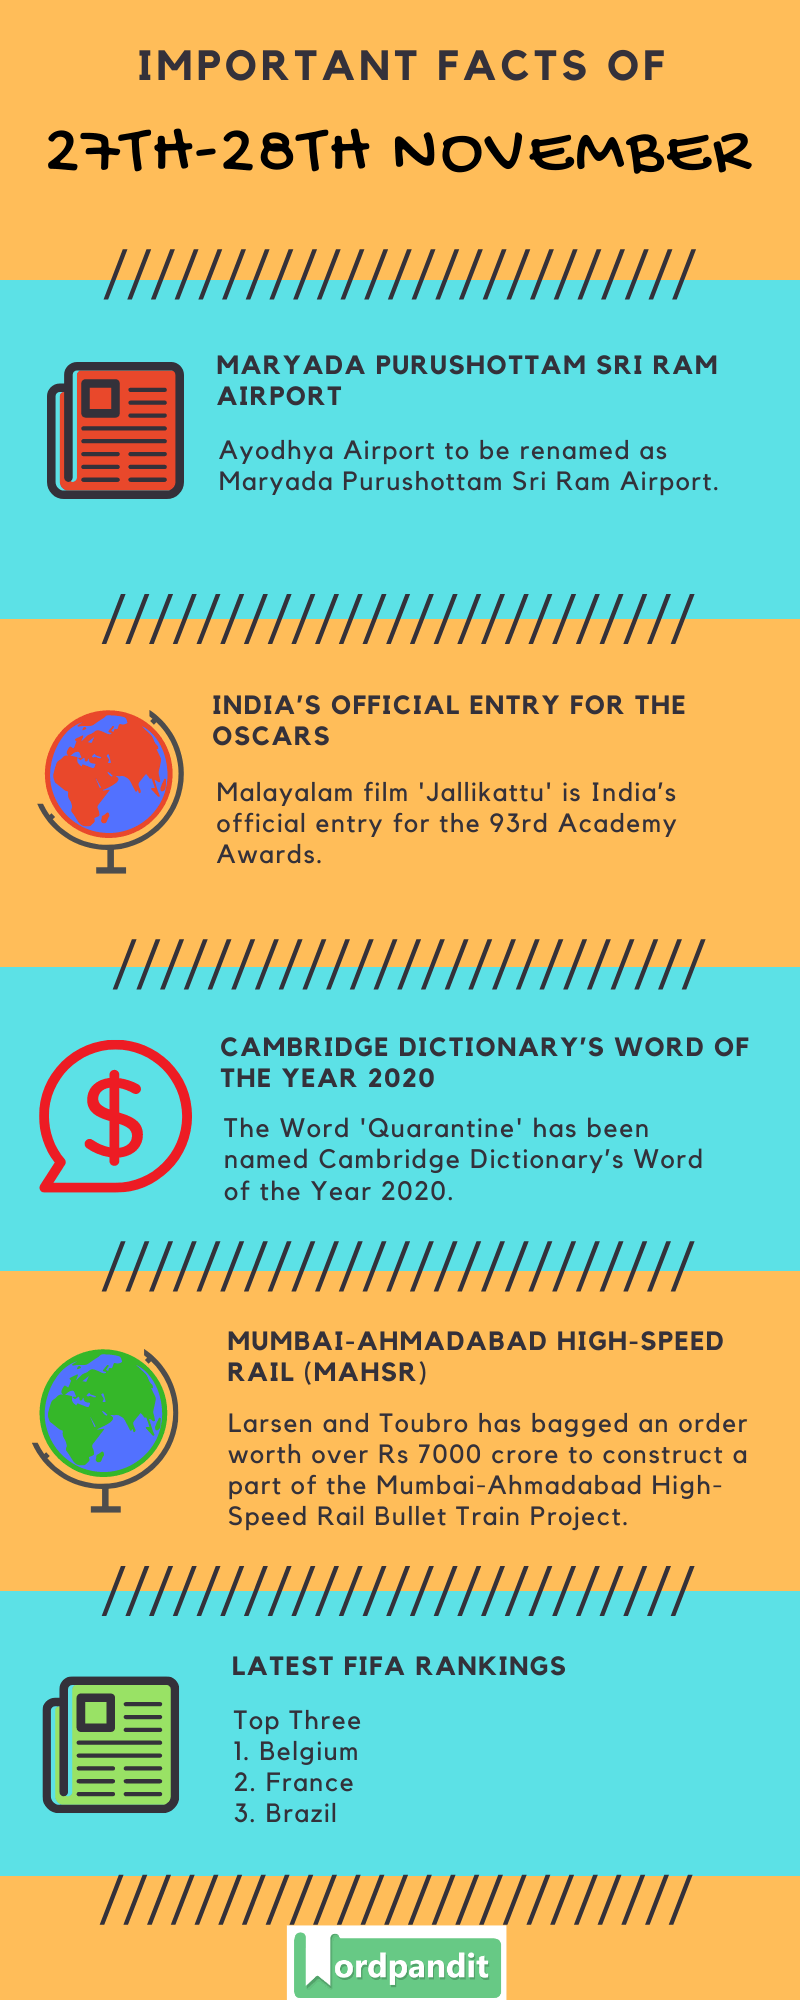 Daily Current Affairs 27th-28th November 2020 Current Affairs Quiz 27th-28th November 2020 Current Affairs Infographic